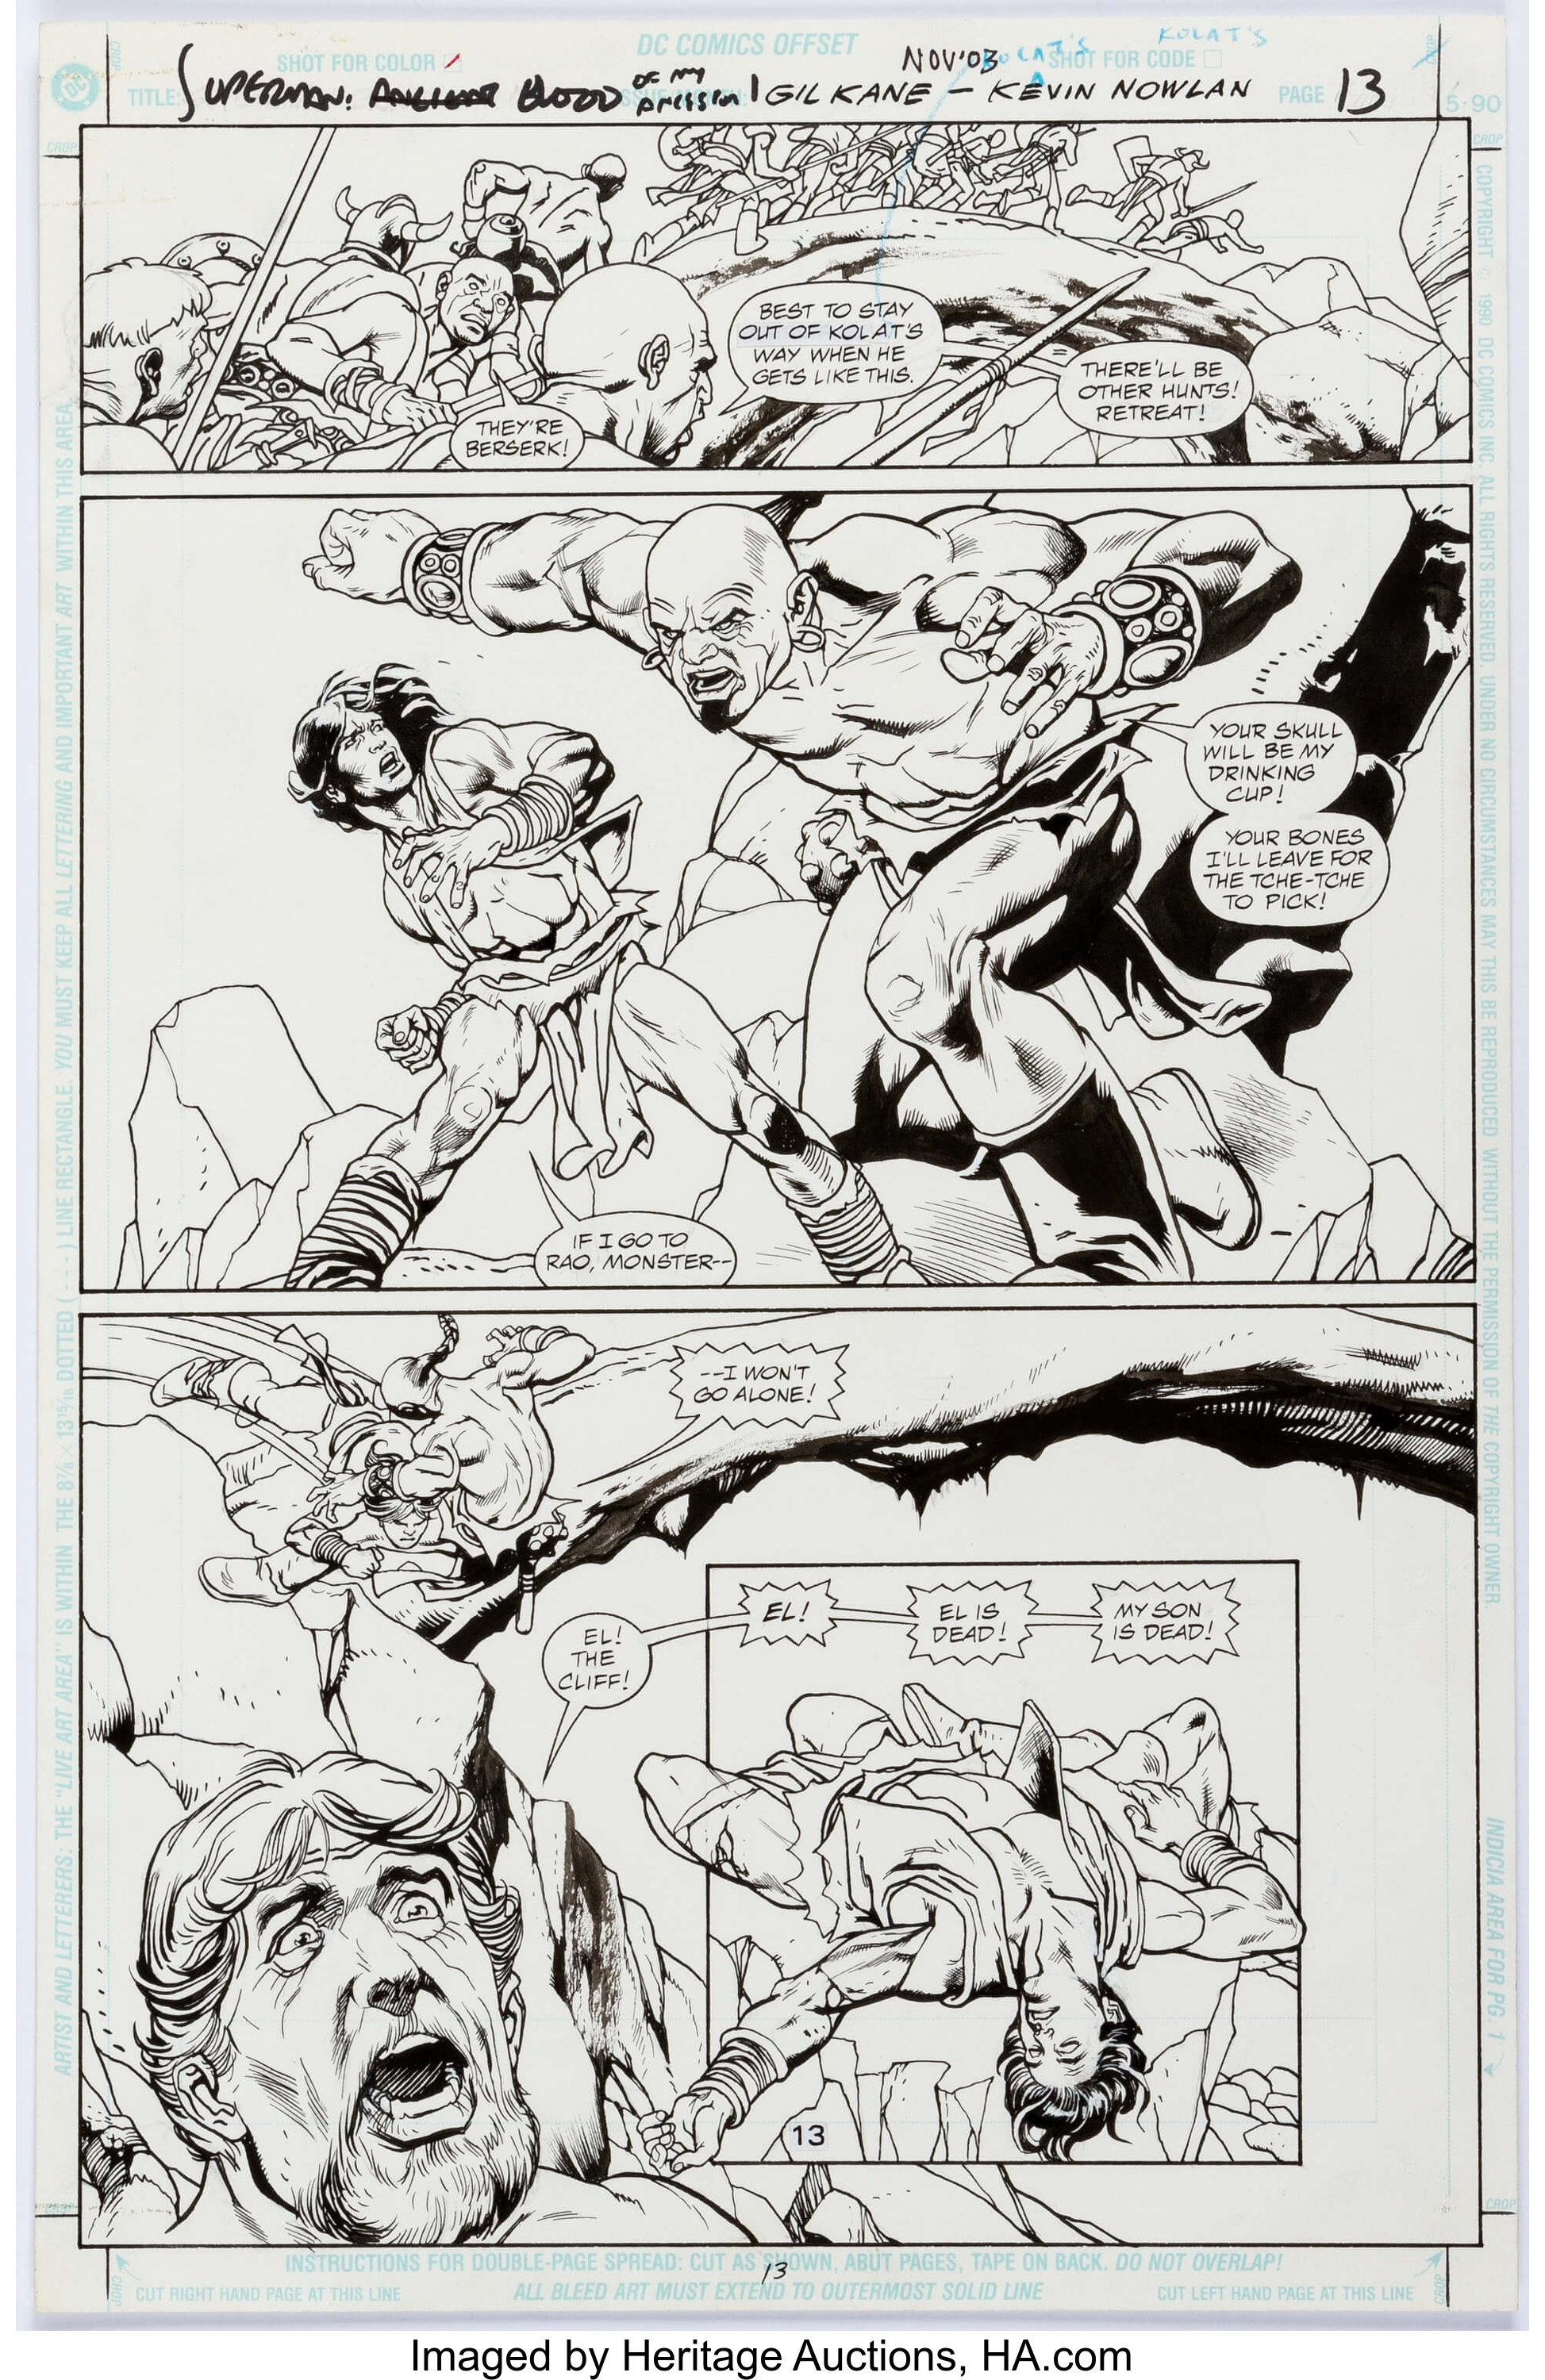 Gil kane and kevin nowlan superman blood of my ancestors story lot 14048 heritage auctions